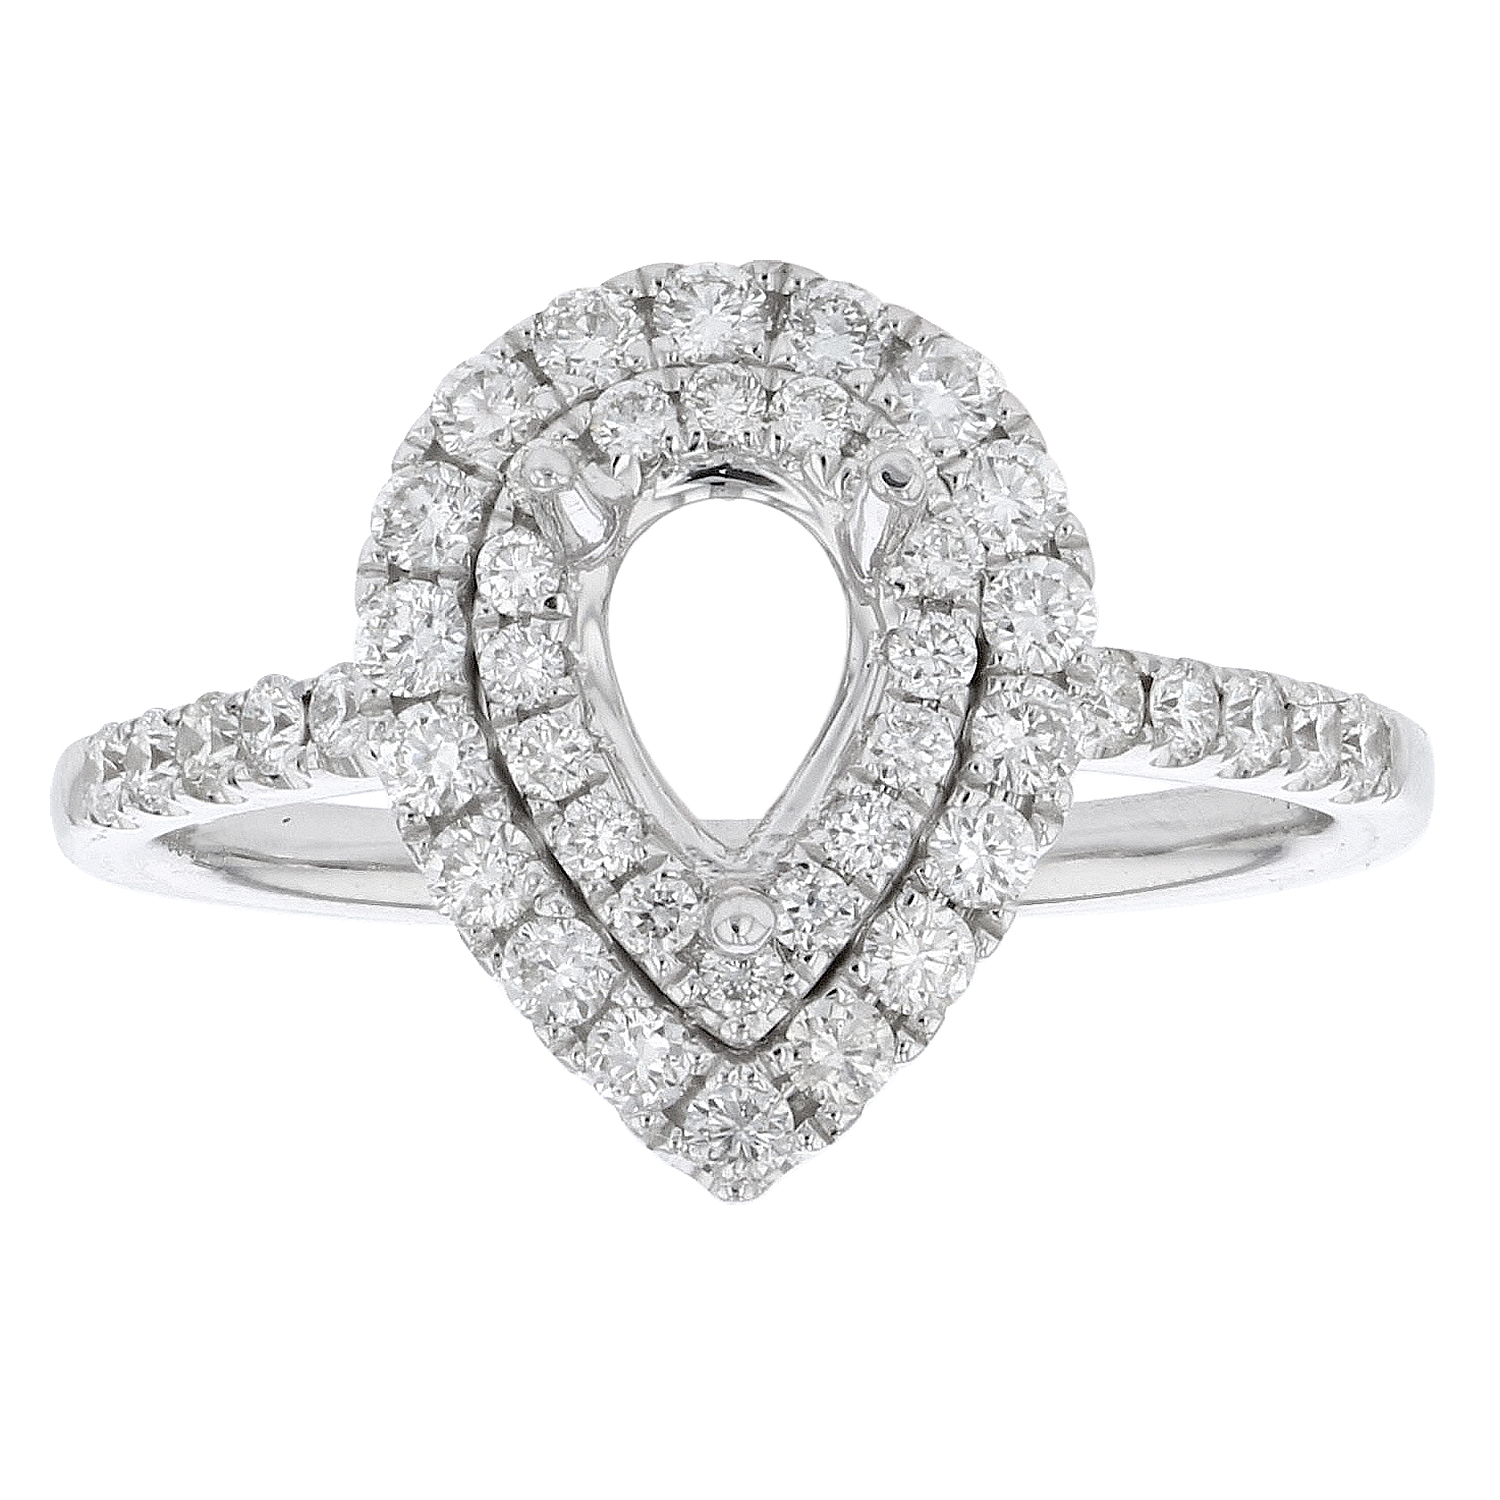 View 0.59ctw Diamond Semi Mount Engagement Ring in 18k White Gold